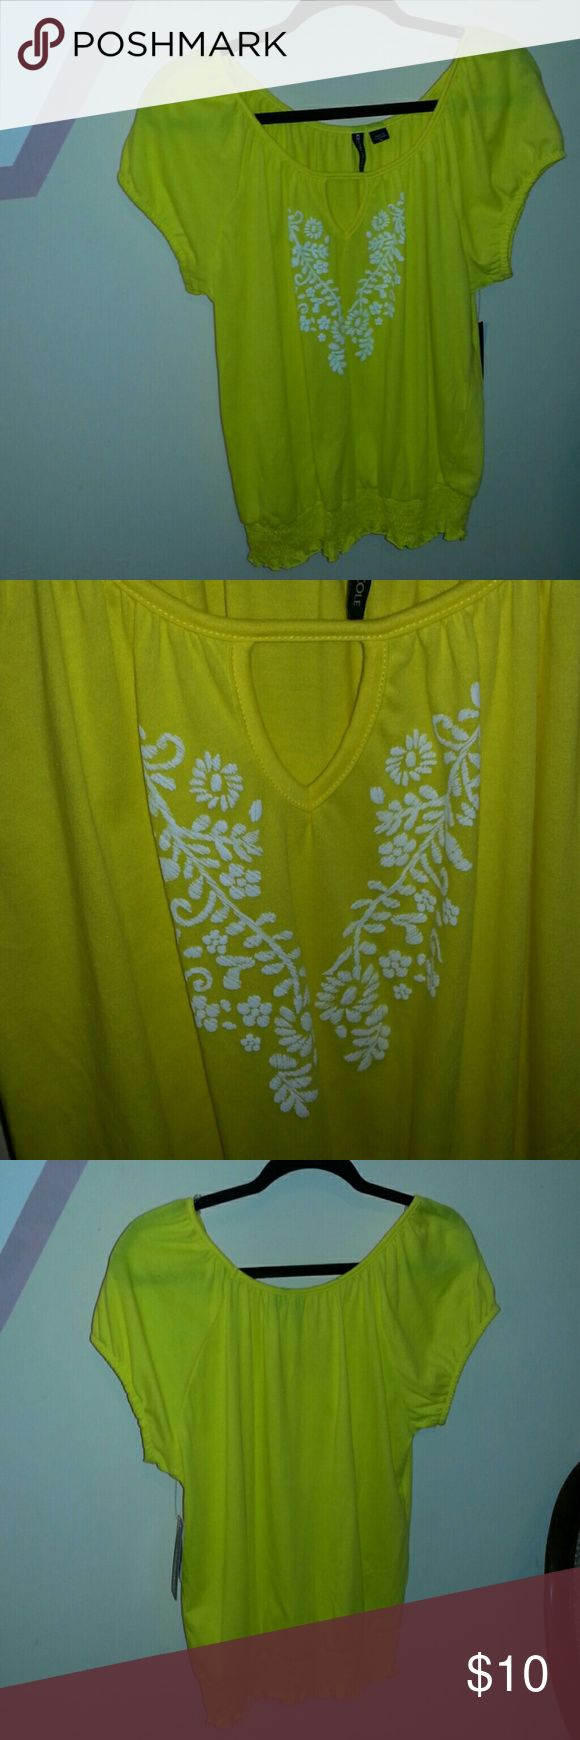 yellow short sleeves top Yellow and white short sleeves top,fits true to size Tops Tees - Short Sleeve